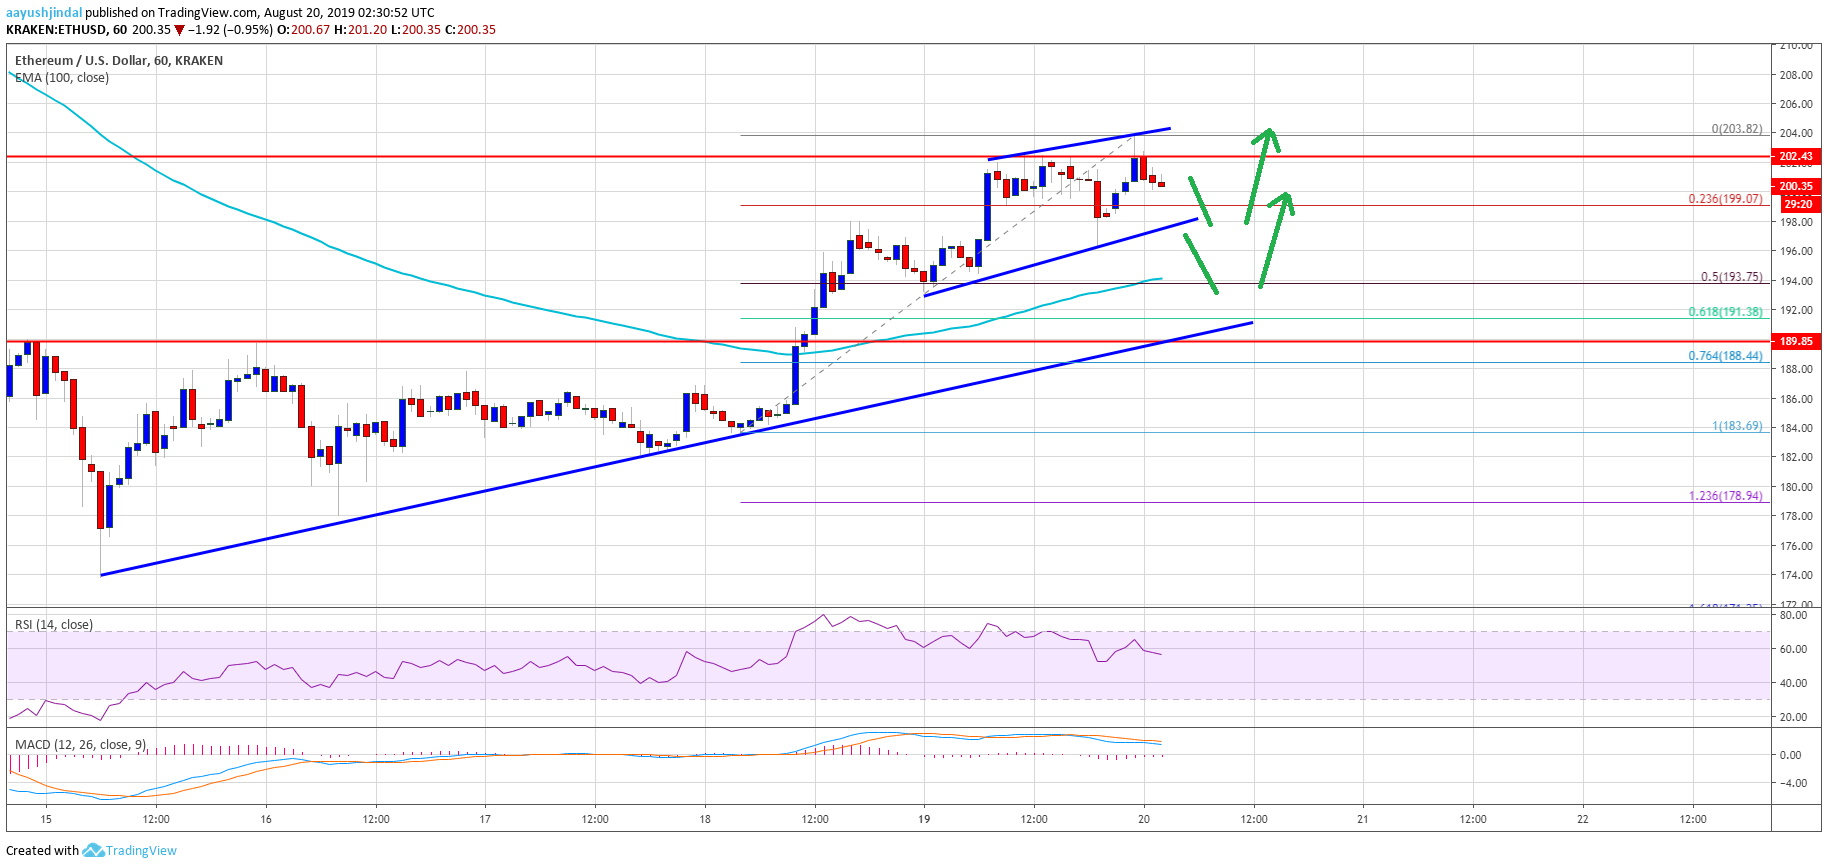 Ethereum Price (ETH) Trading Near Make-or-Break Levels